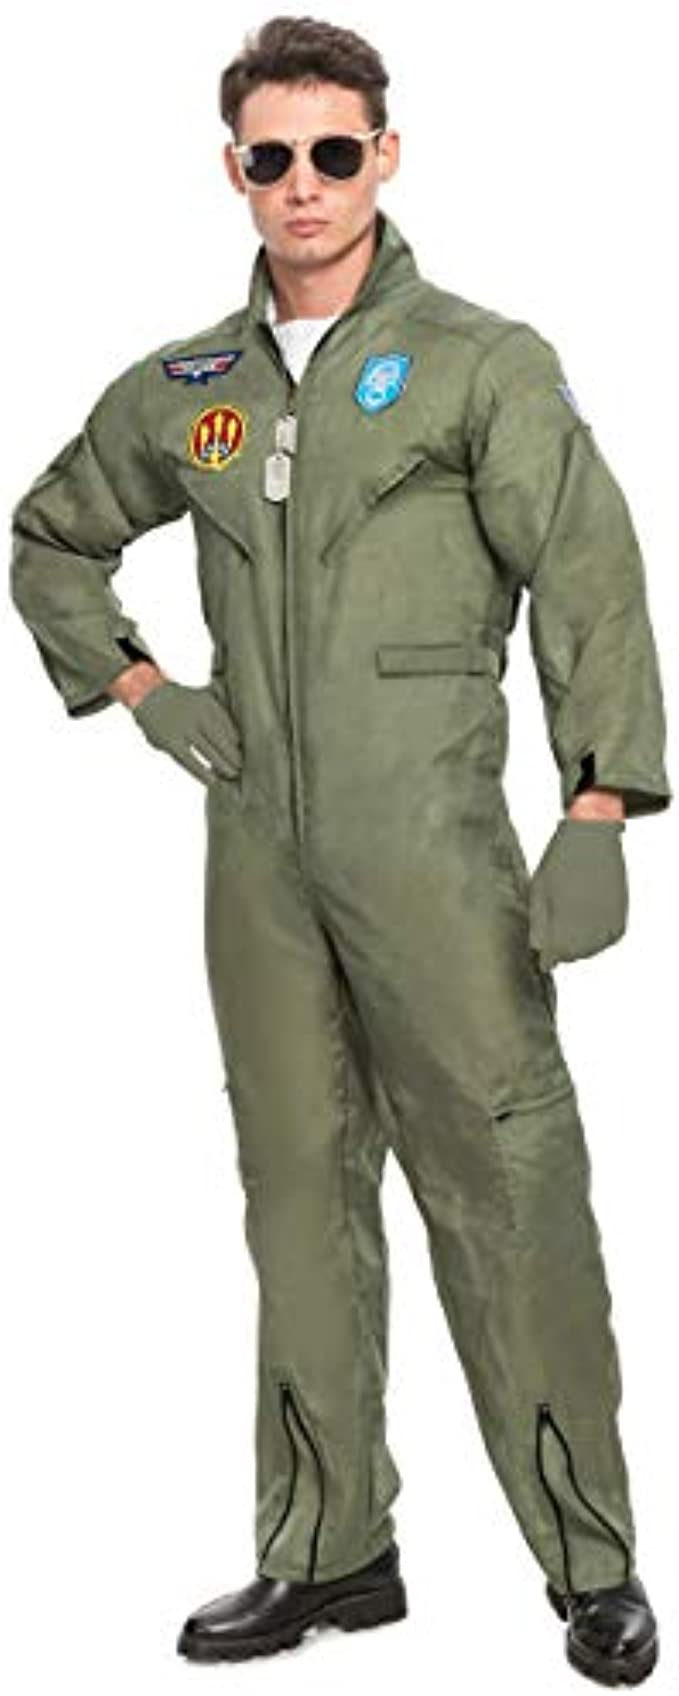 Spooktacular Creations Men's Flight Pilot Adult Costume with Accessory for Halloween Party